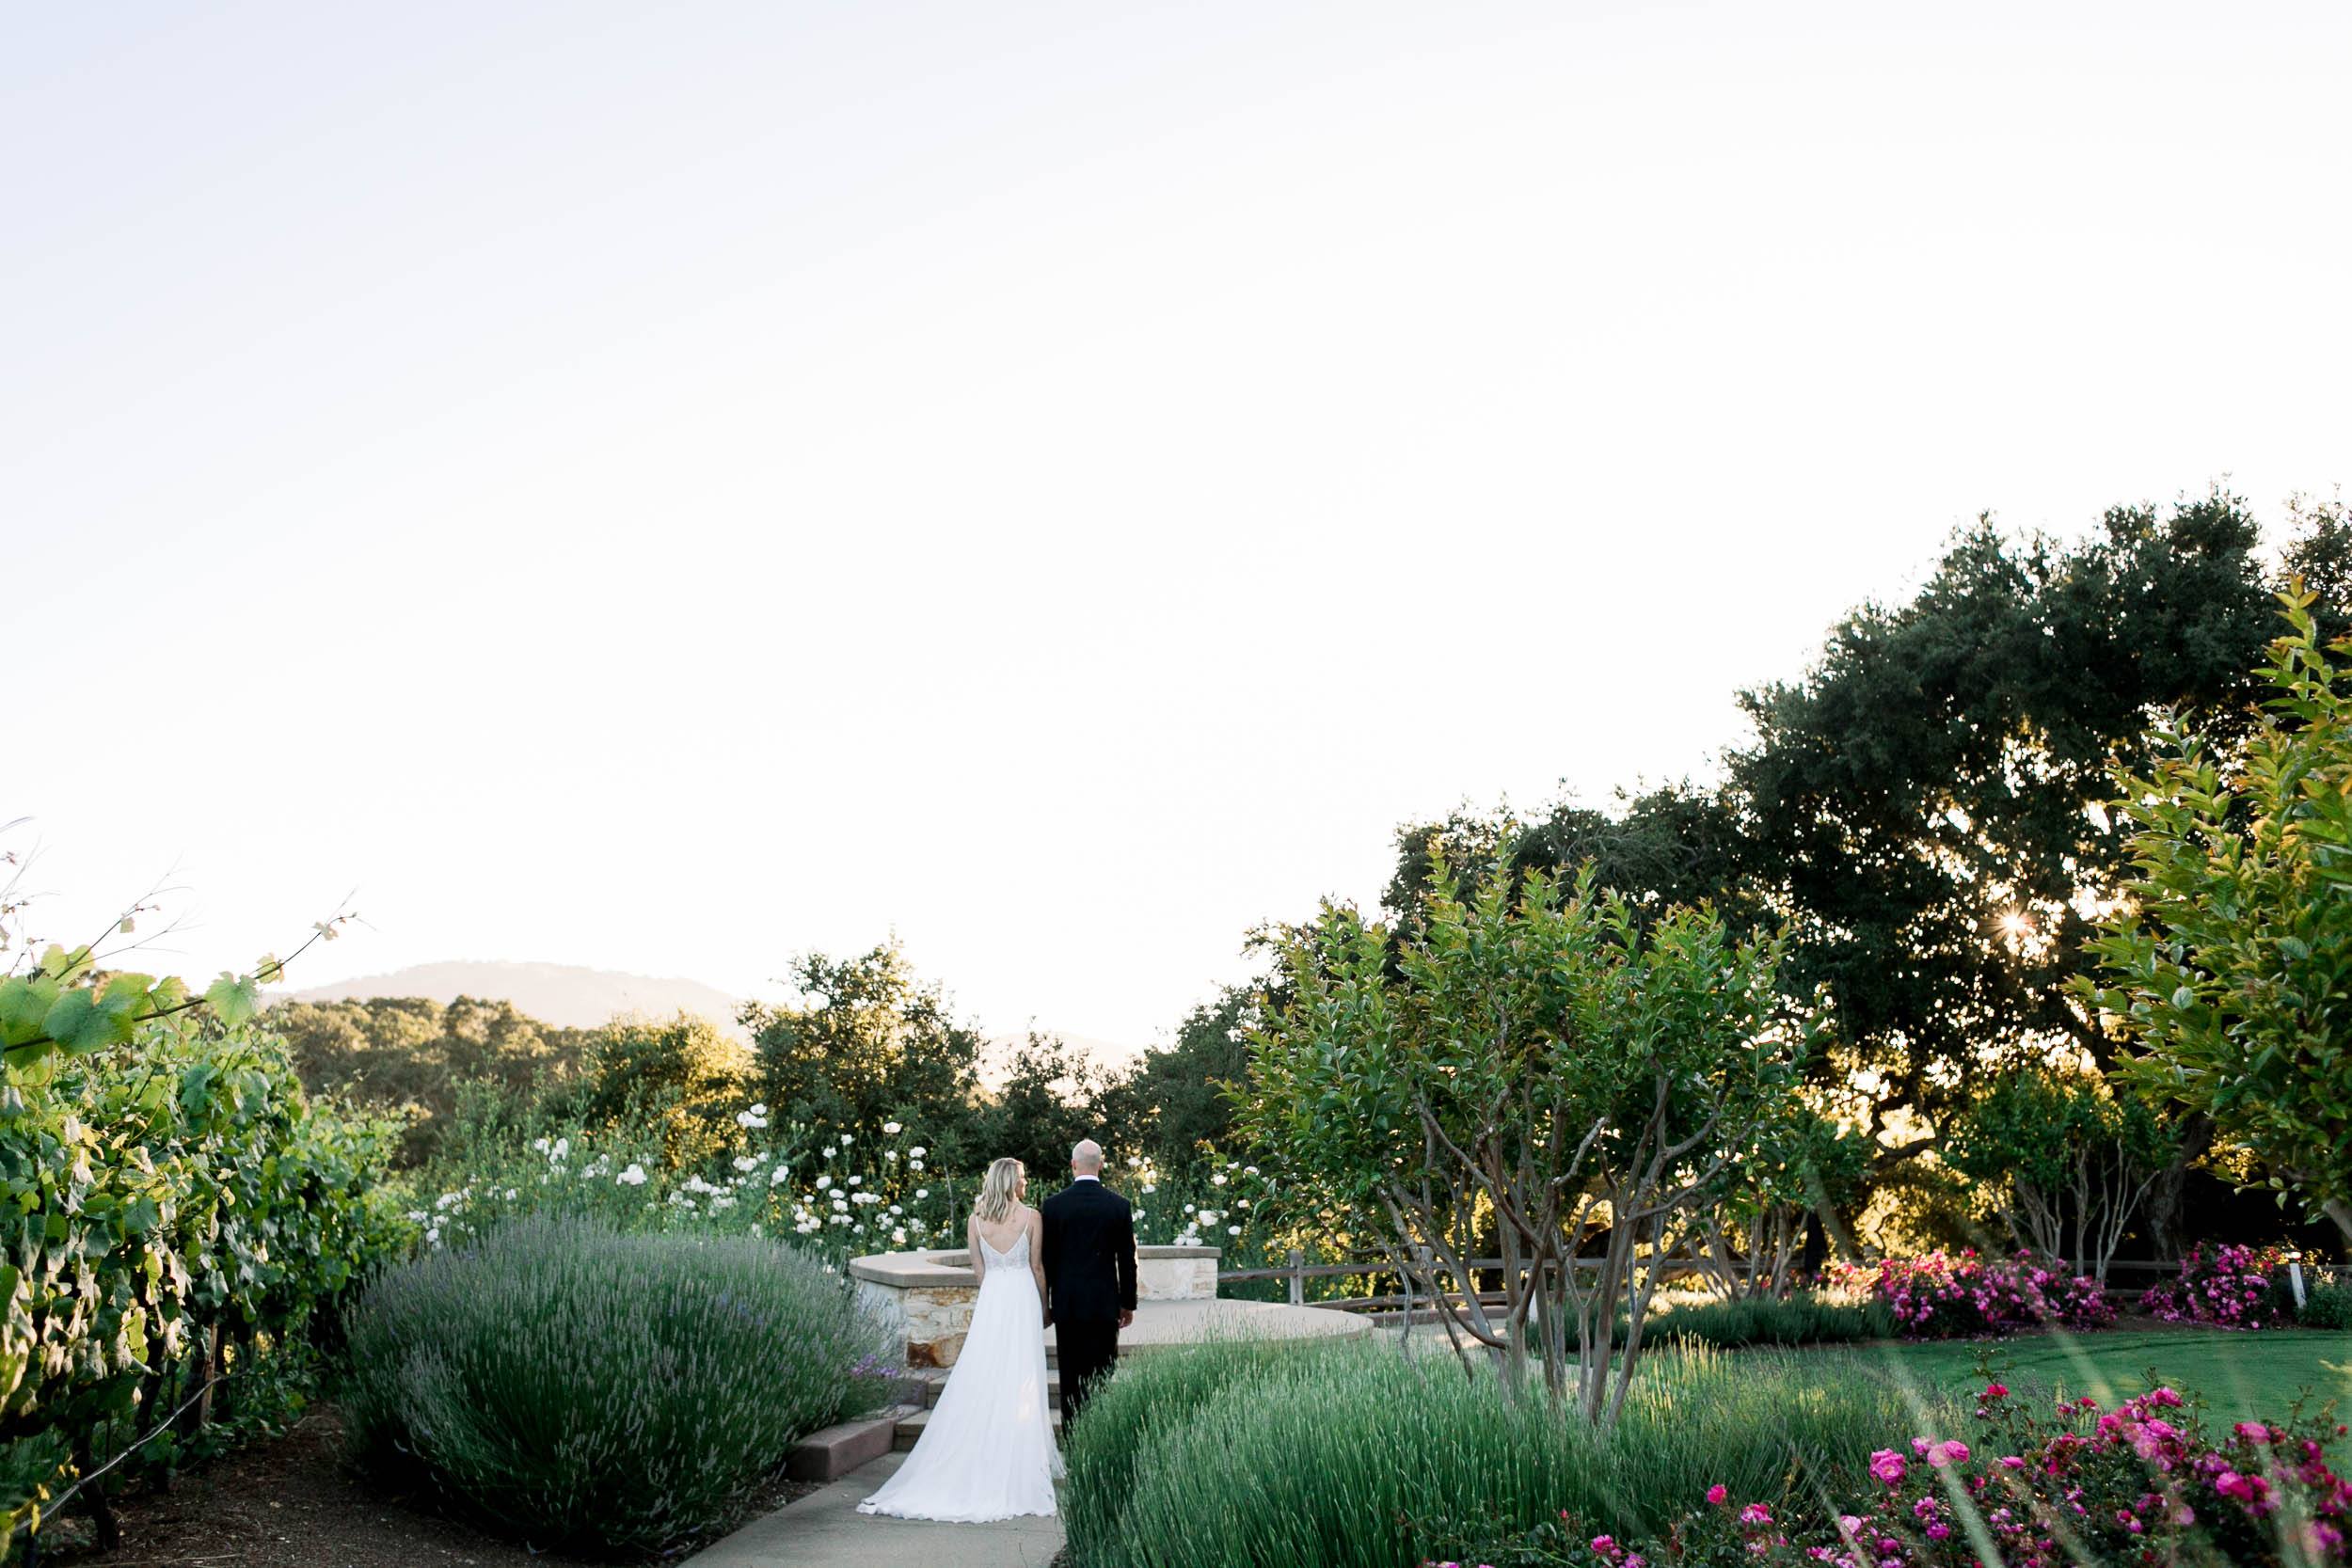 C+D_Holman Ranch Wedding_Carmel Valley_Buena Lane Photography_060619_ER739.jpg